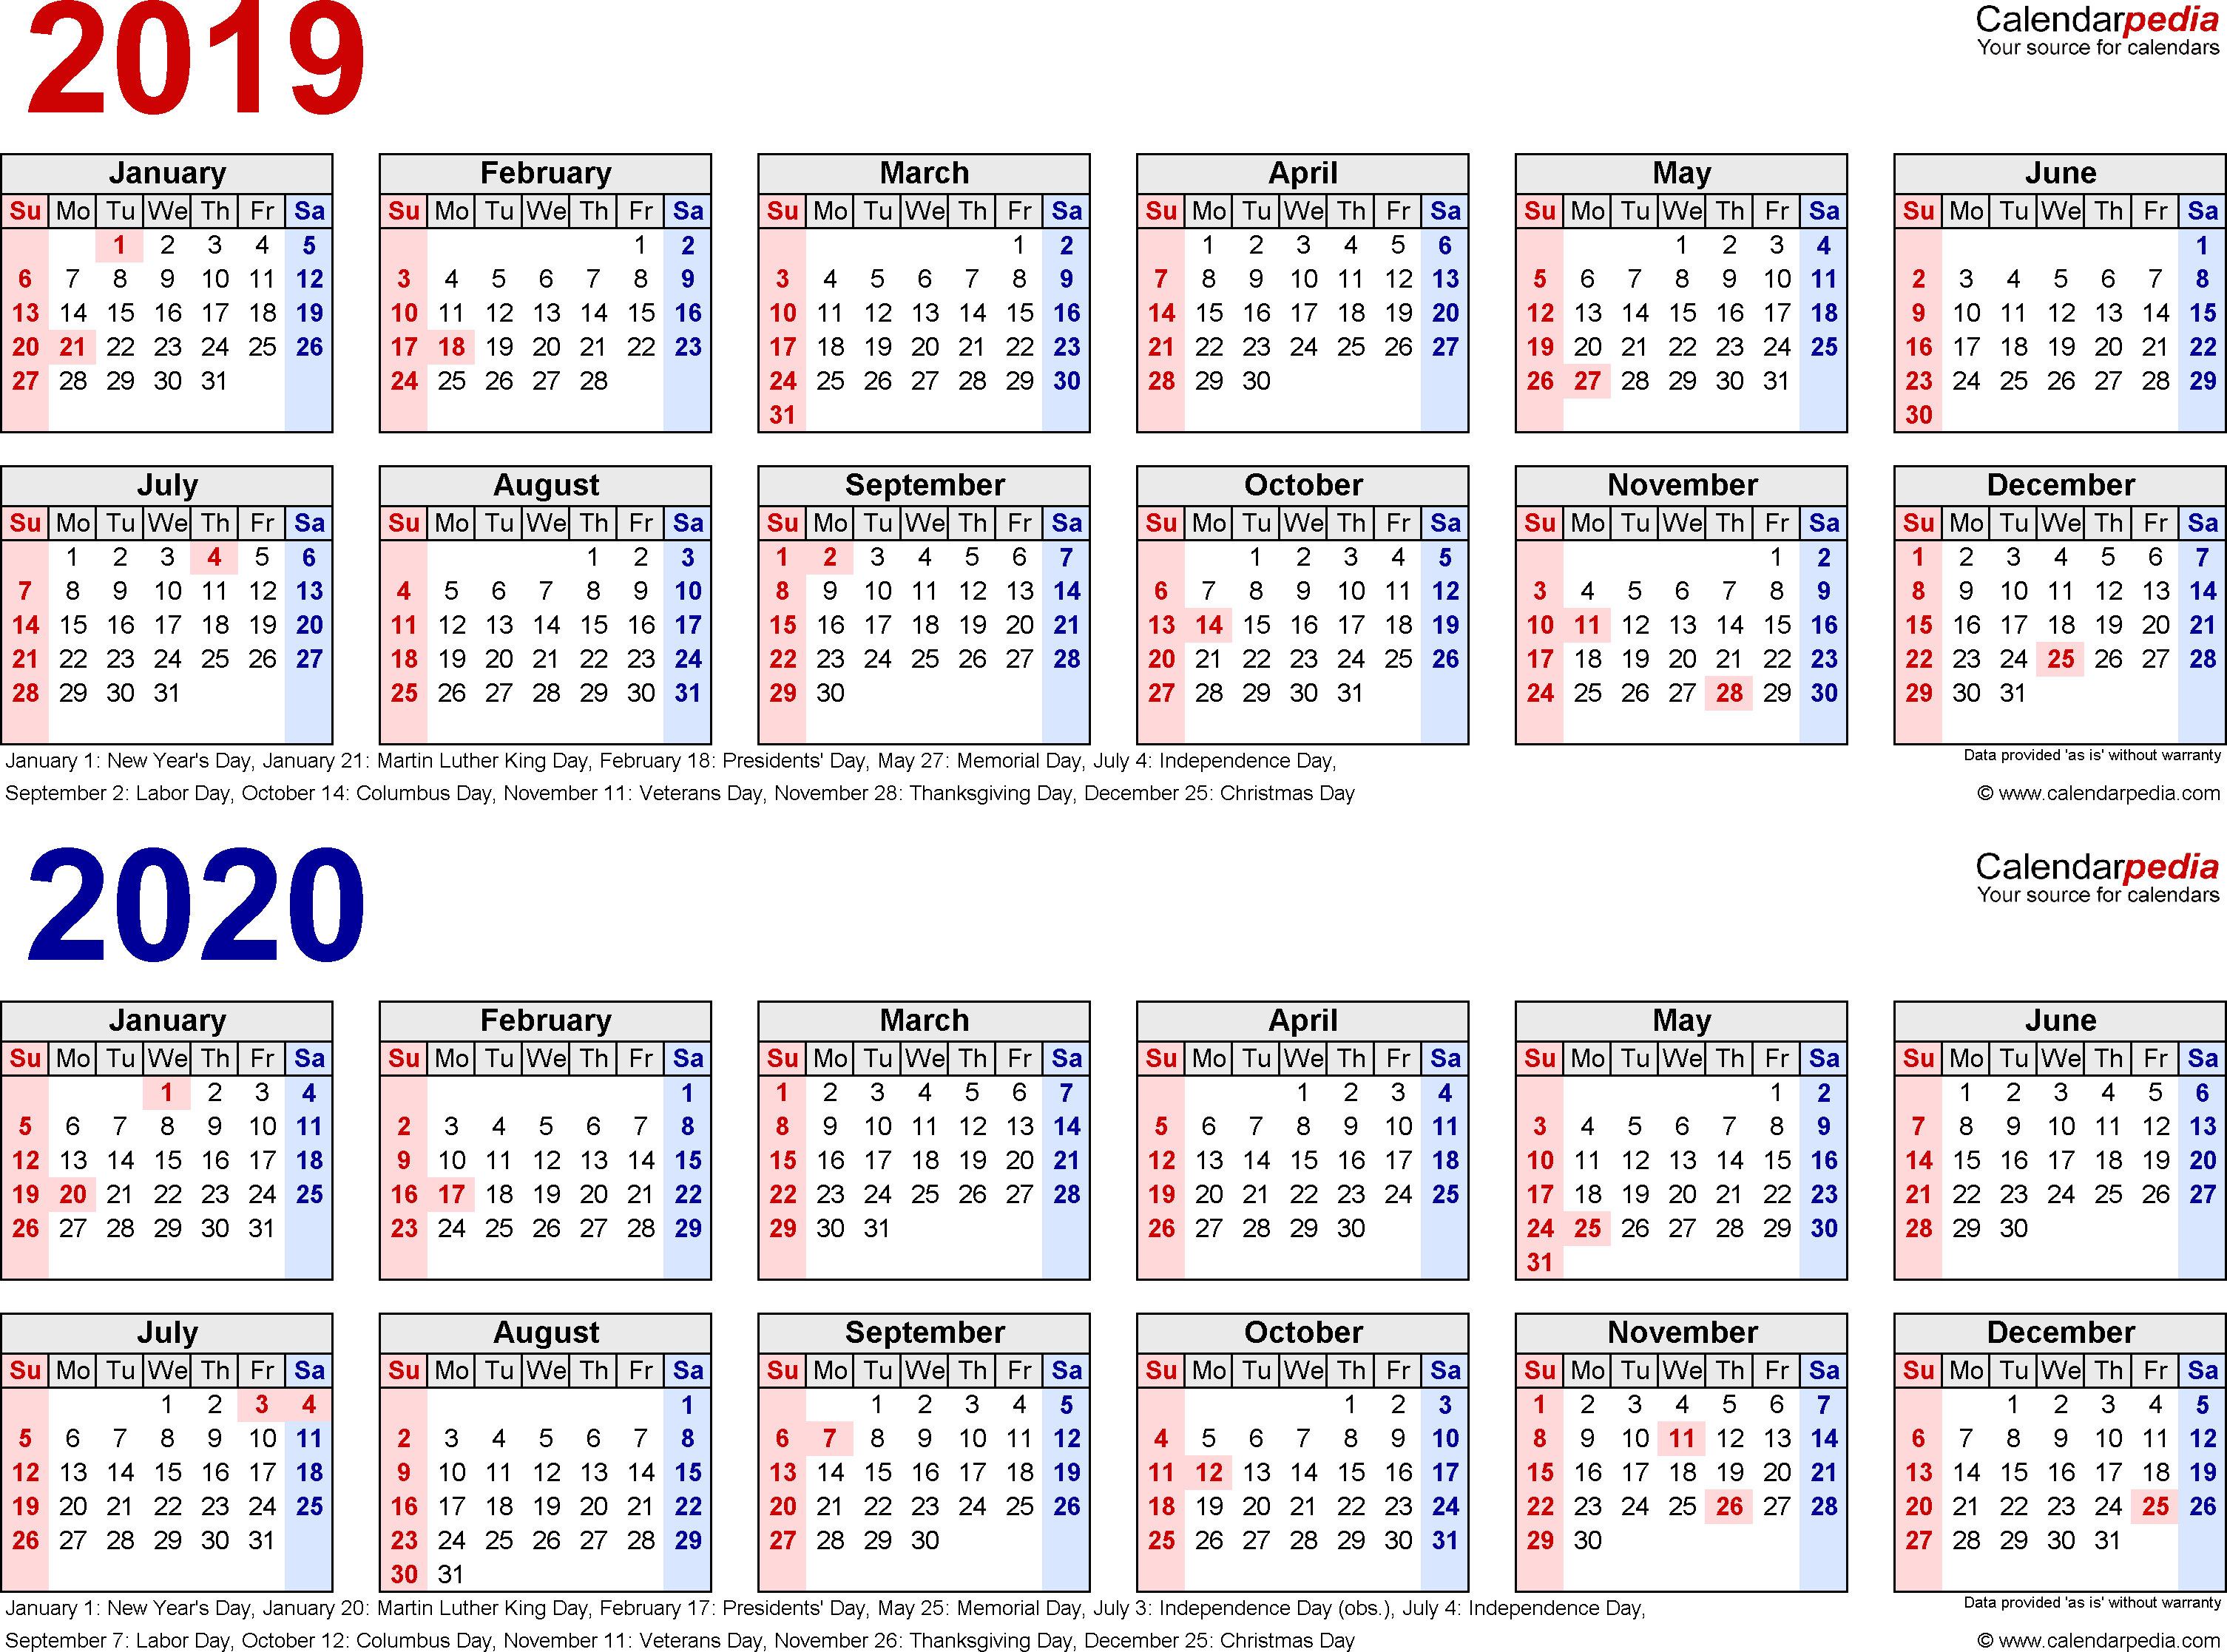 2019-2020 Calendar - Free Printable Two-Year Pdf Calendars inside Year To View Calendar 2019/2020